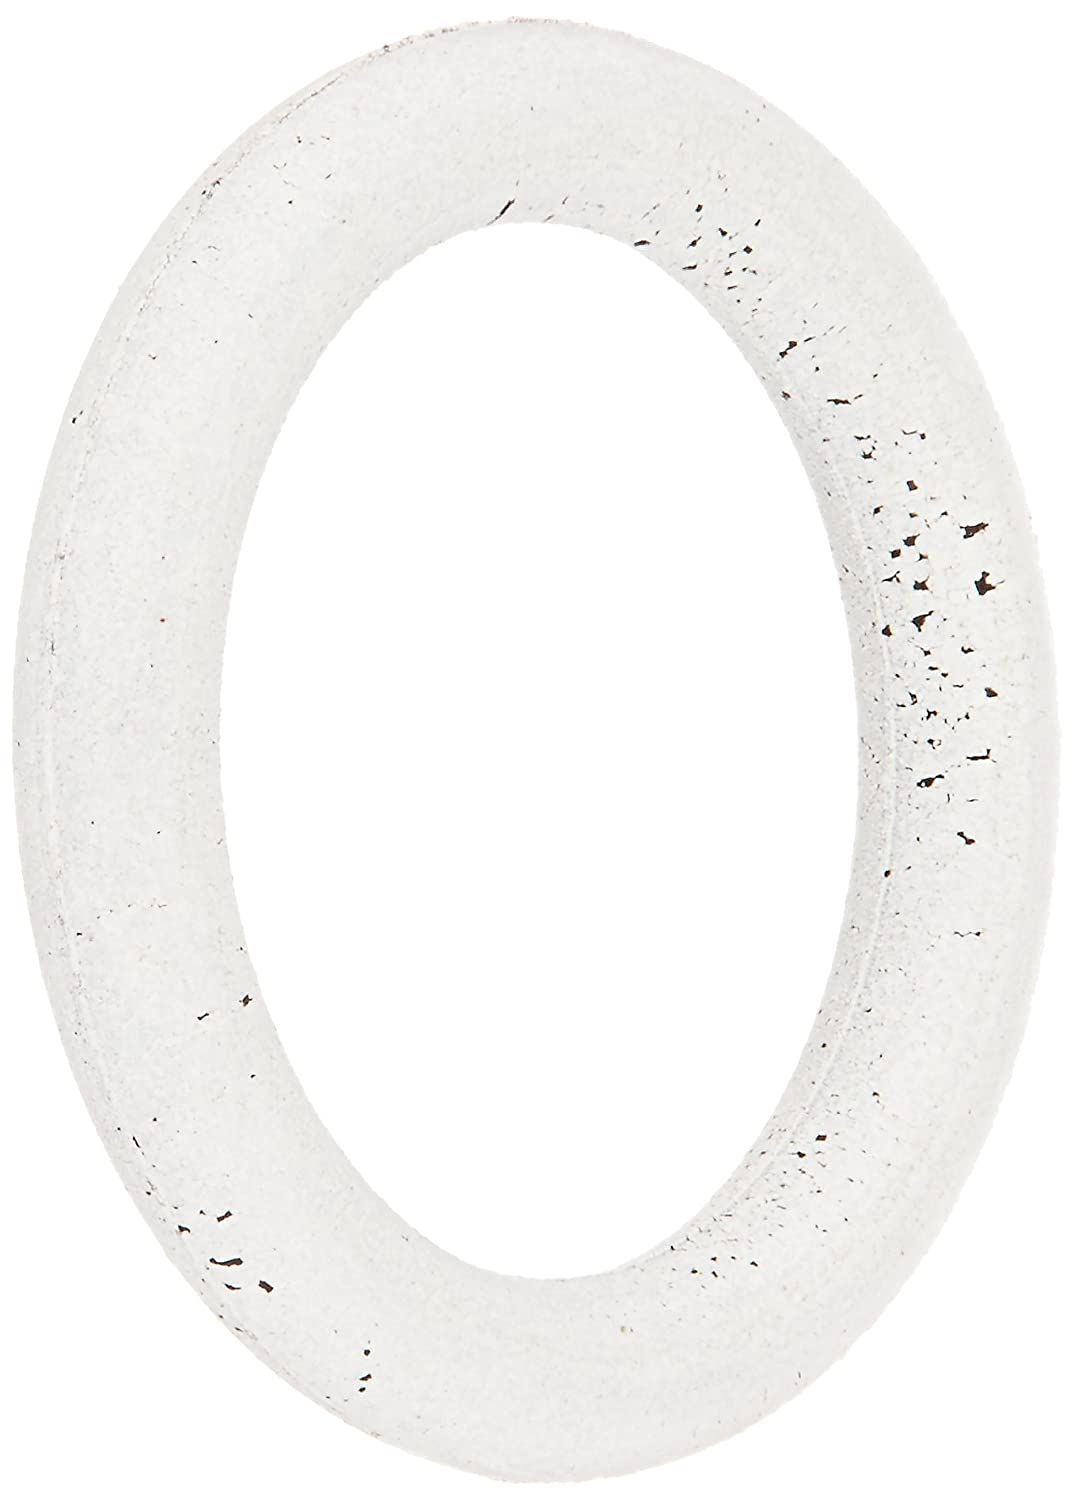 General Electric WE1M461 Dryer O-Ring